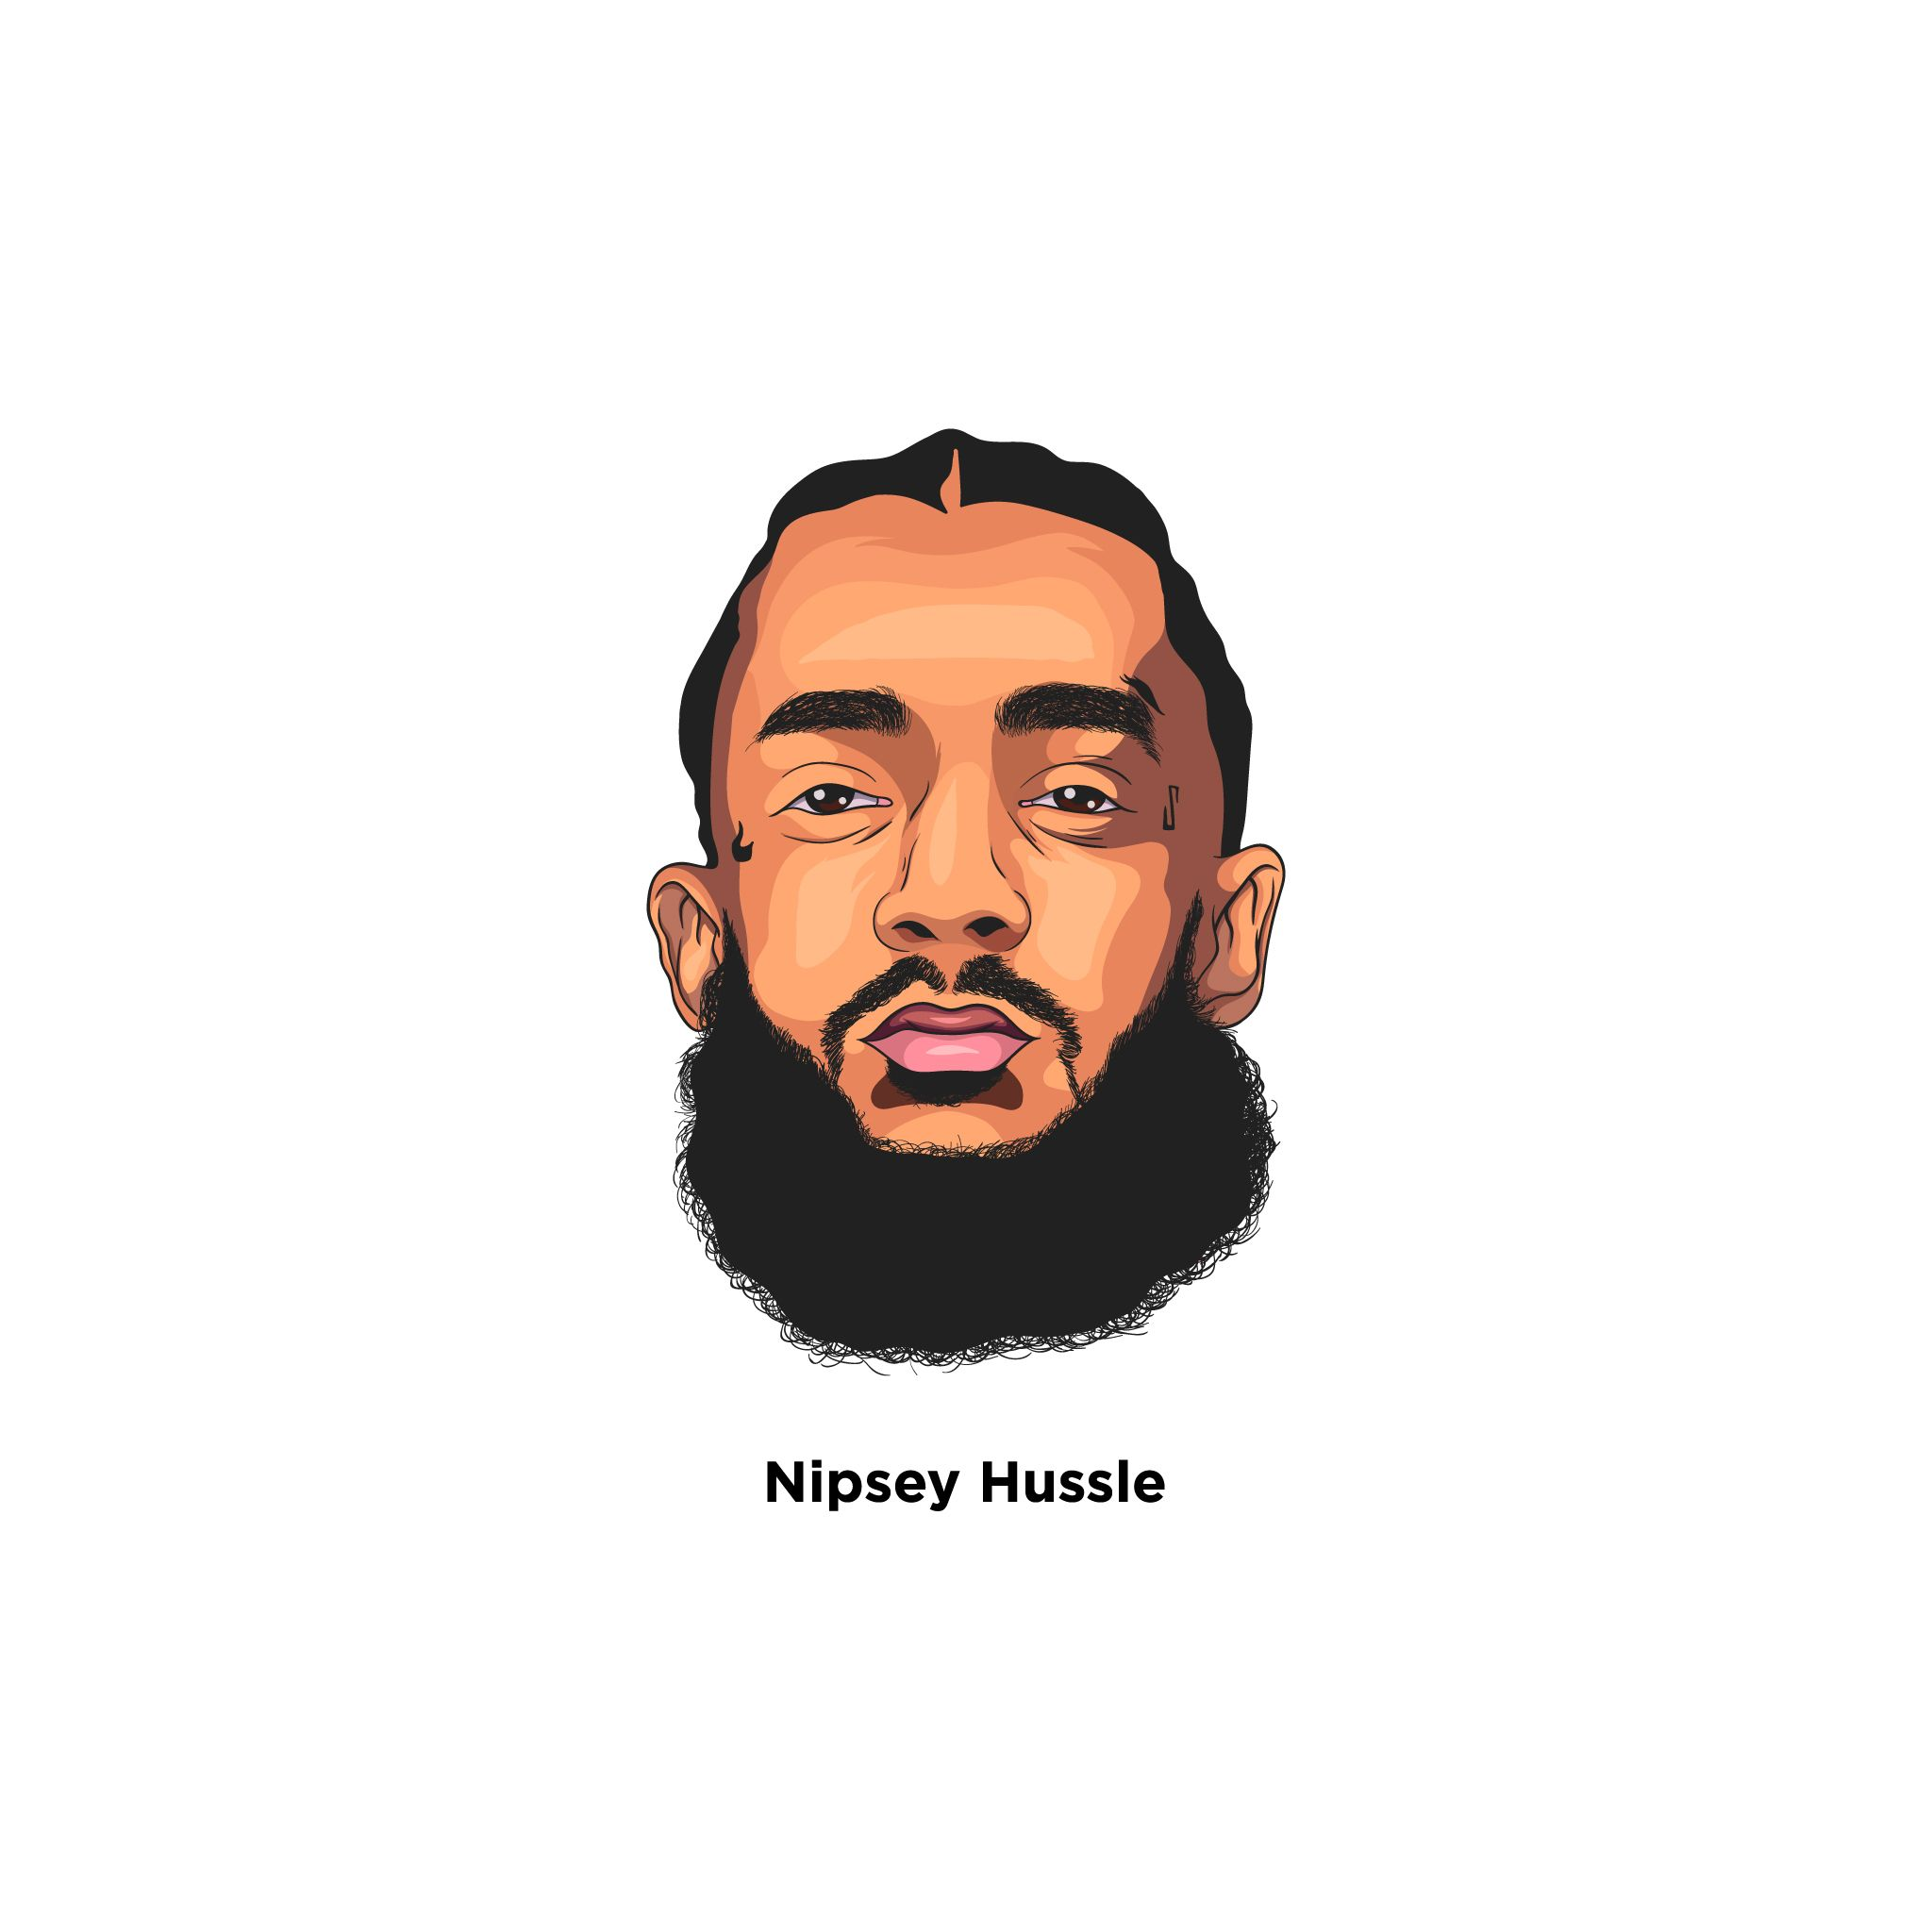 Tribute of Nipsey Hussle. #restinpeace.